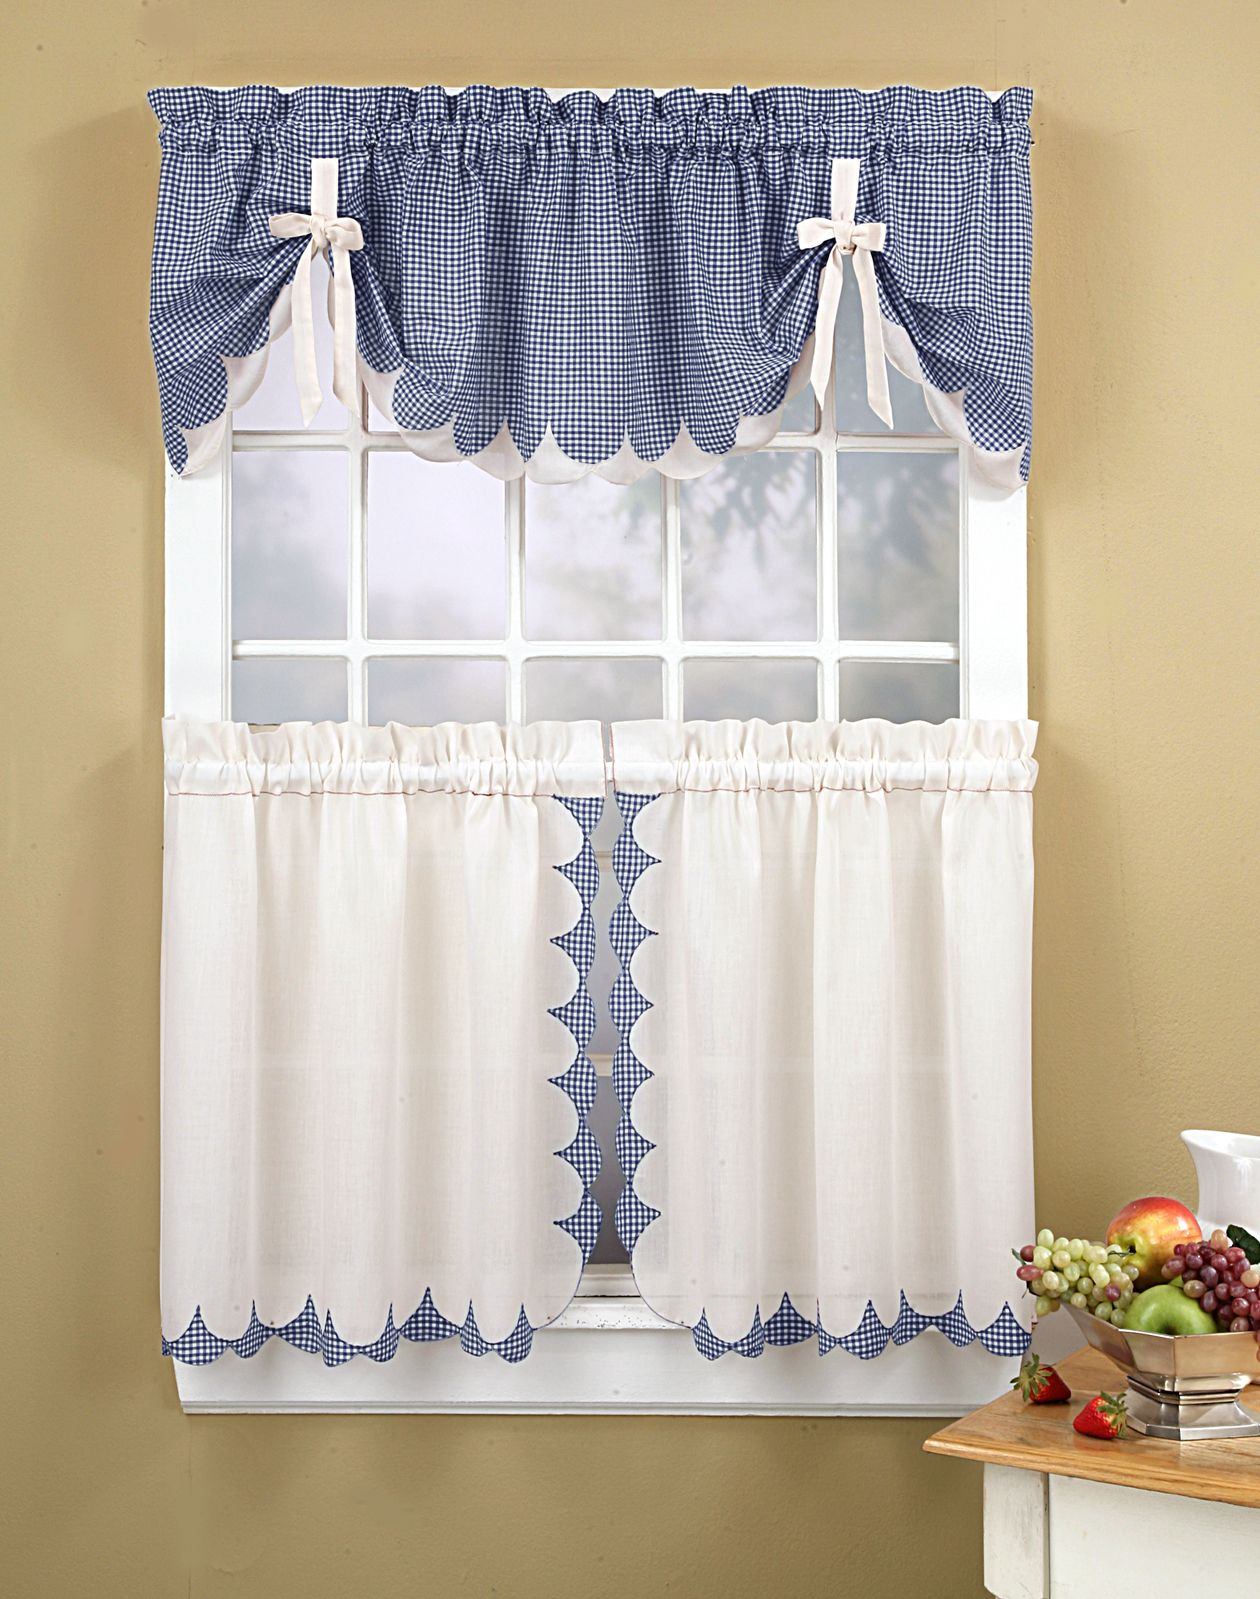 Kitchen curtains tabitha 3 piece kitchen curtain tier for Kitchen window curtains